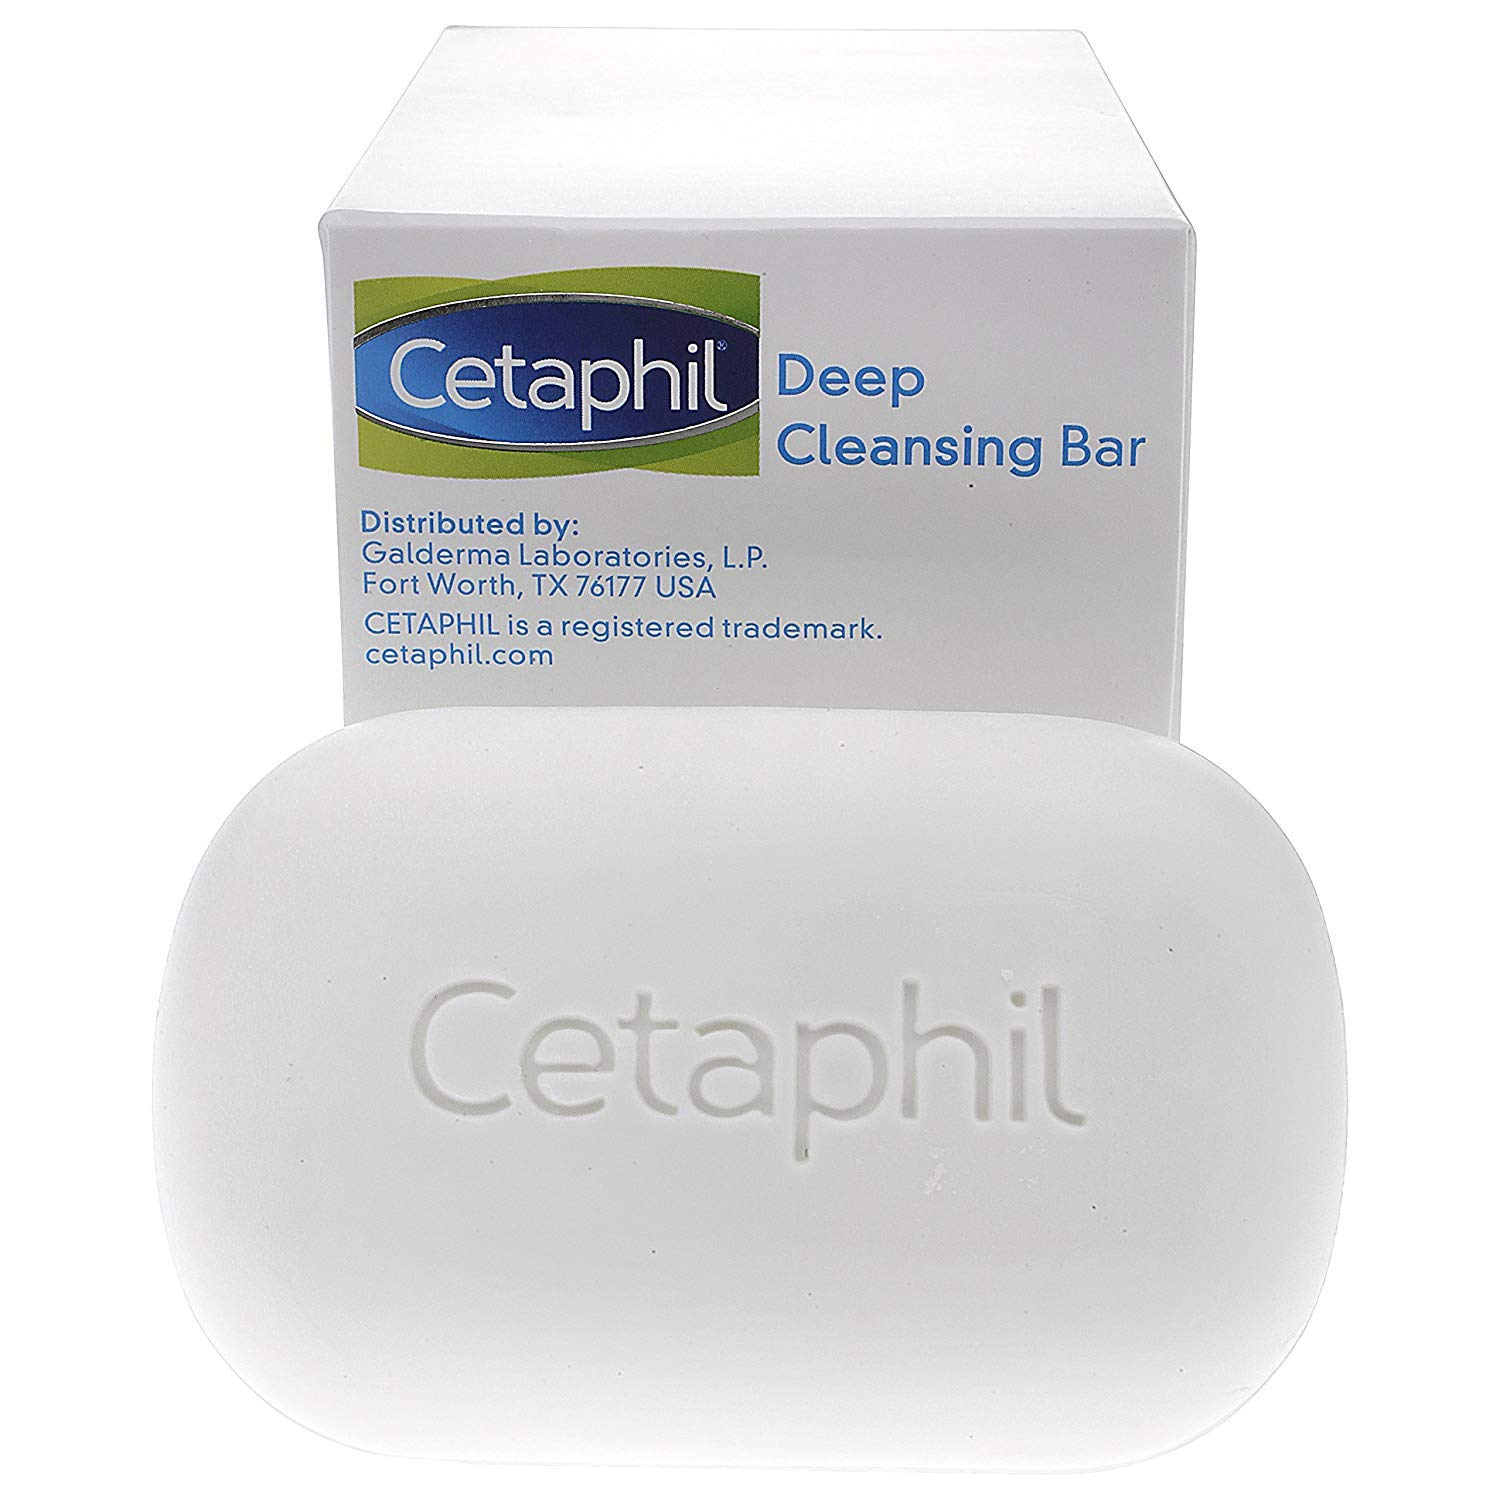 Cetaphil Deep Cleansing Face & Body Bar for All Skin Types (Pack of 11) (Pack of 11) by Cetaphil (Image #2)